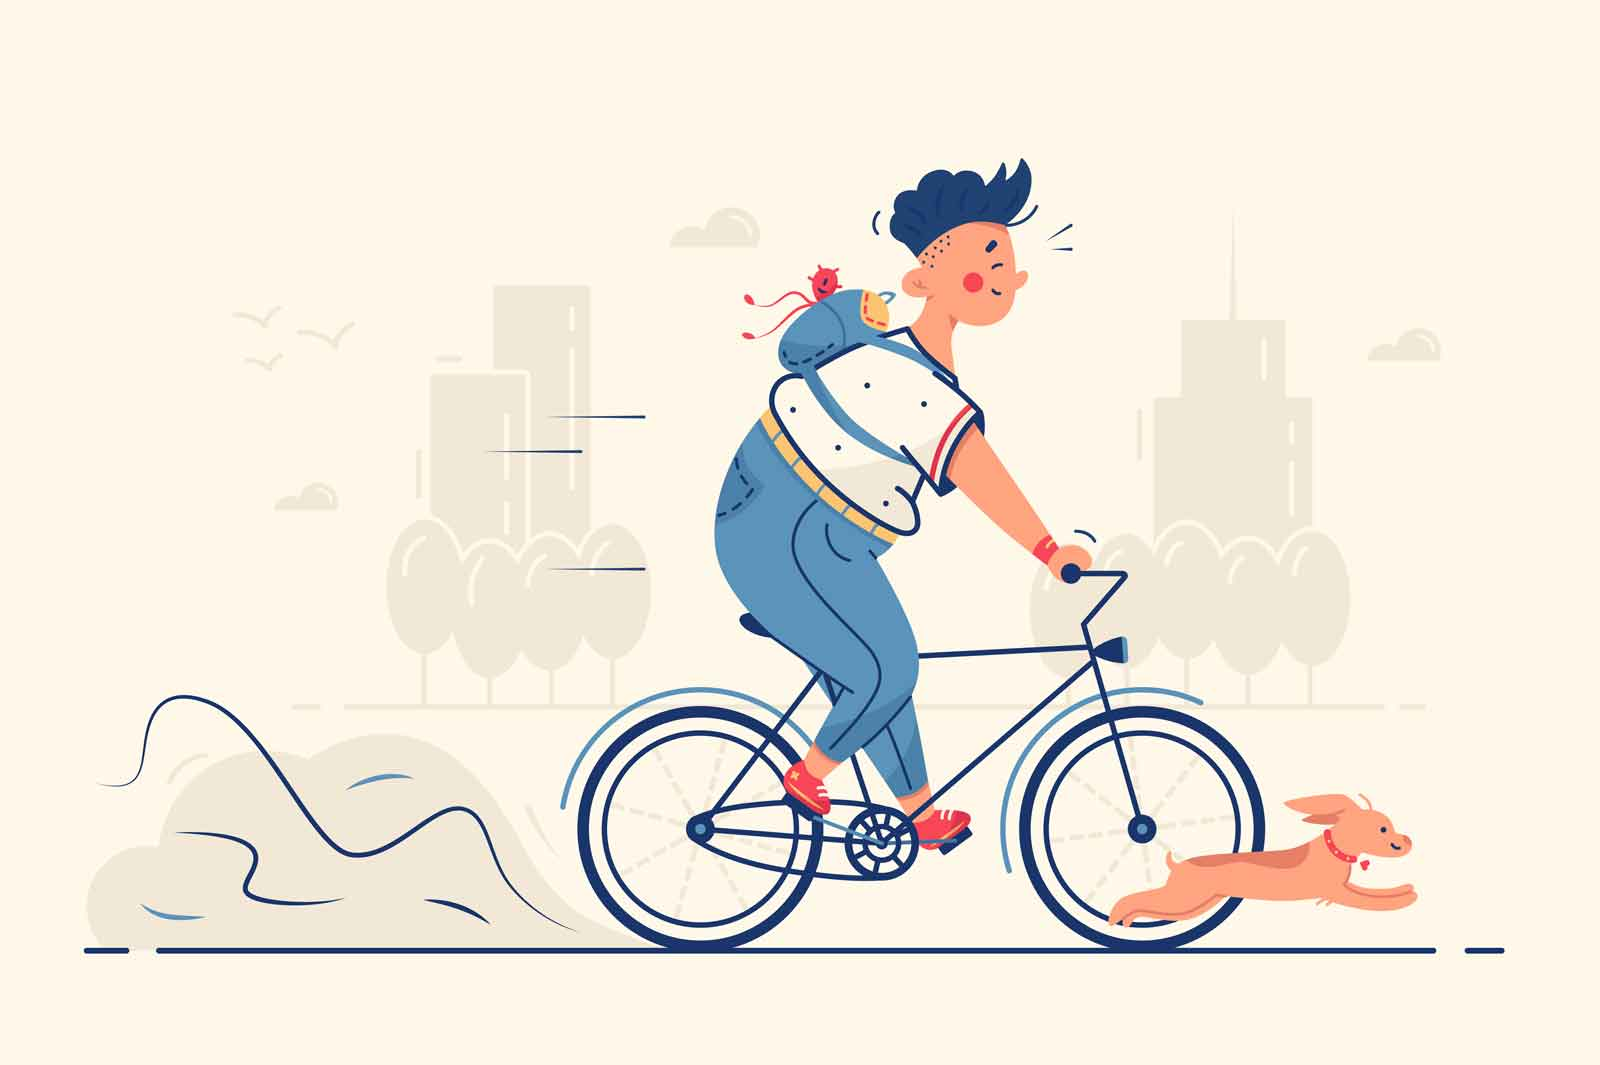 Guy riding bike with dog vector illustration. Man on weekend have fun with pet flat style. Hobby, leisure and outdoors activity concept. Isolated on beige background